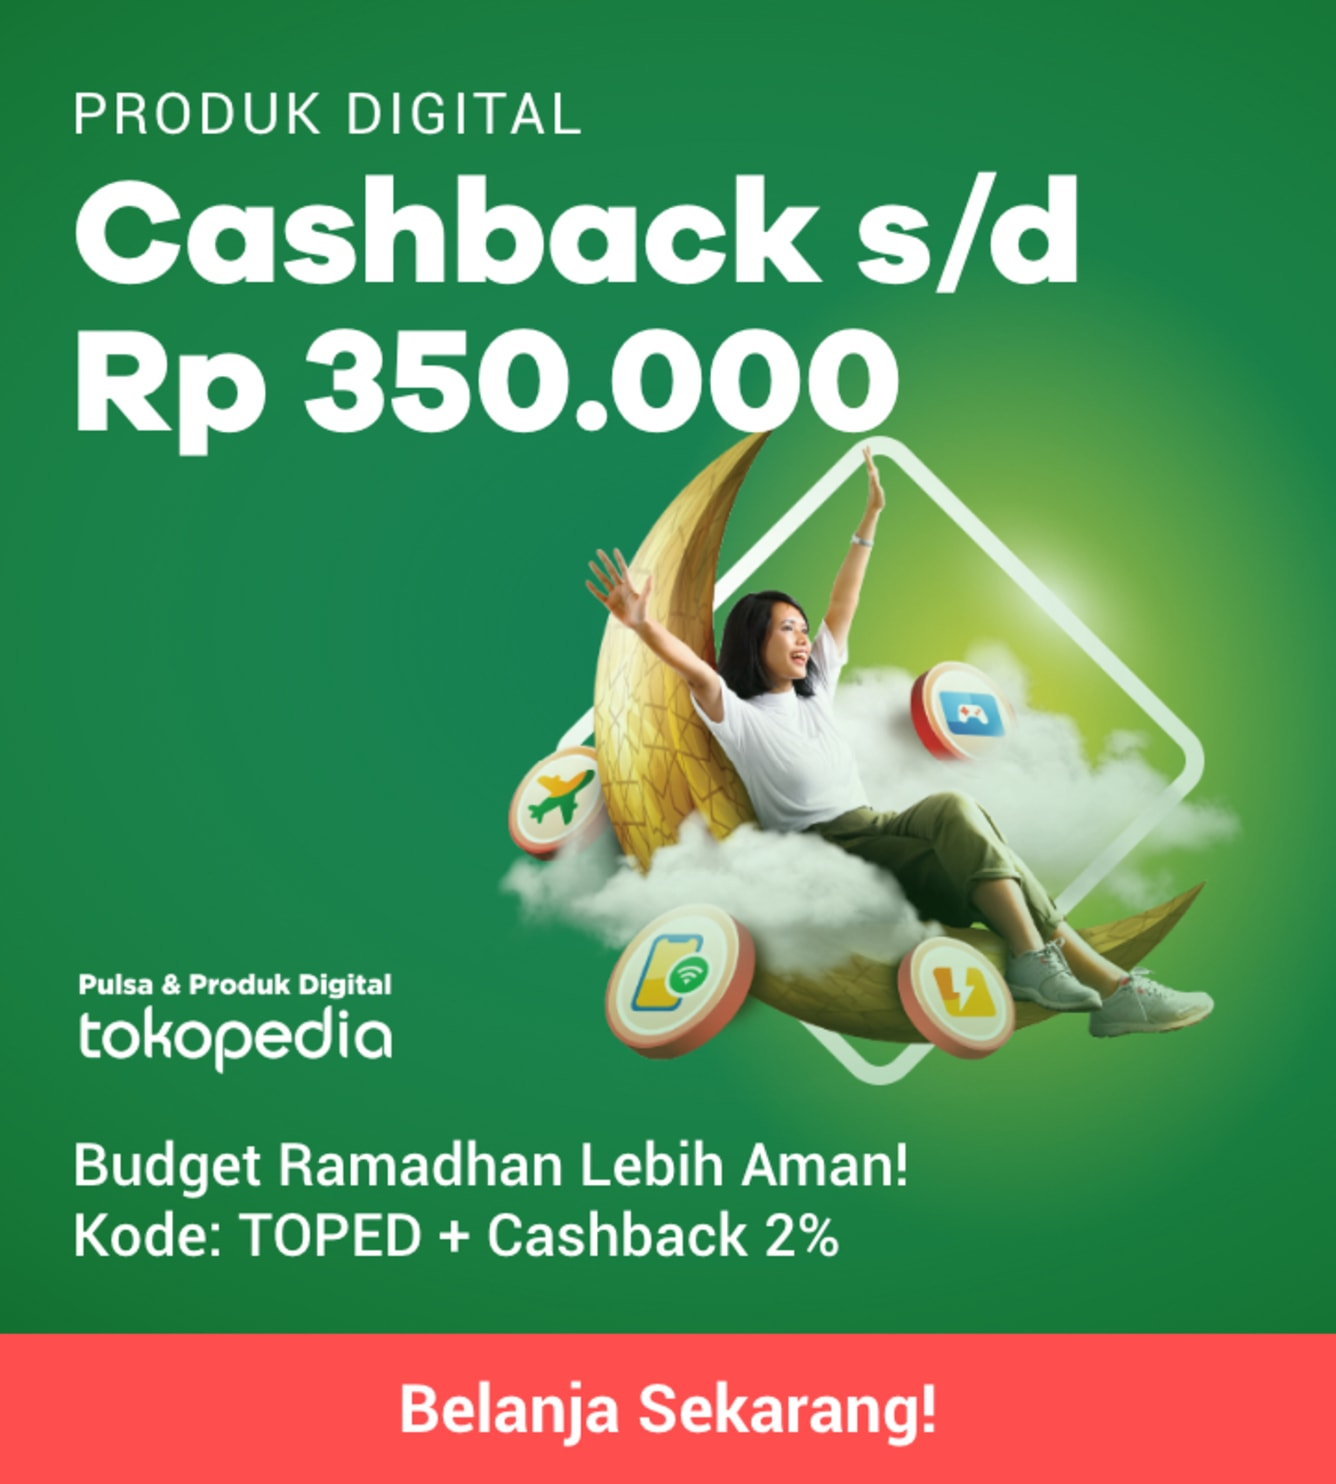 Week 21 - Promo Pulsa Tokopedia